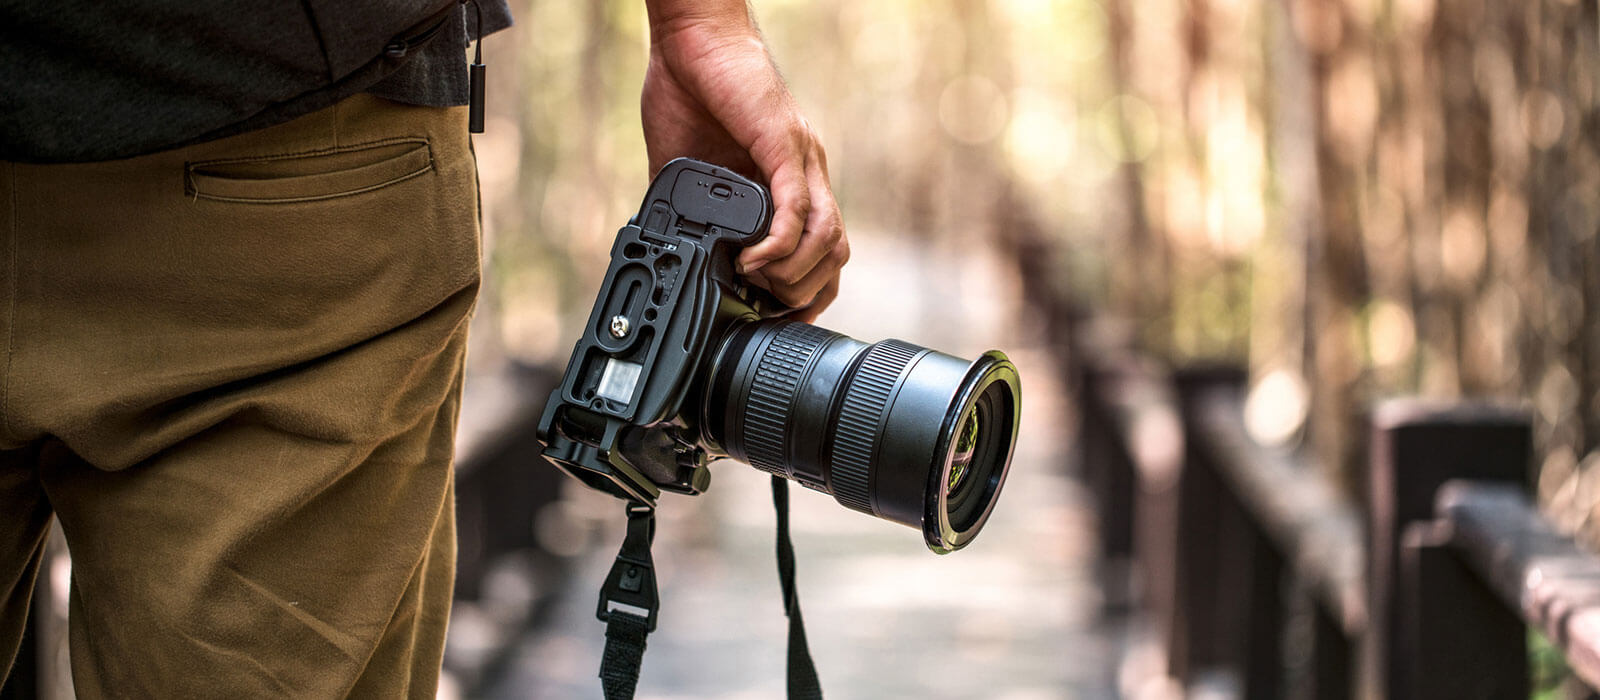 Best dslr for amature photographer